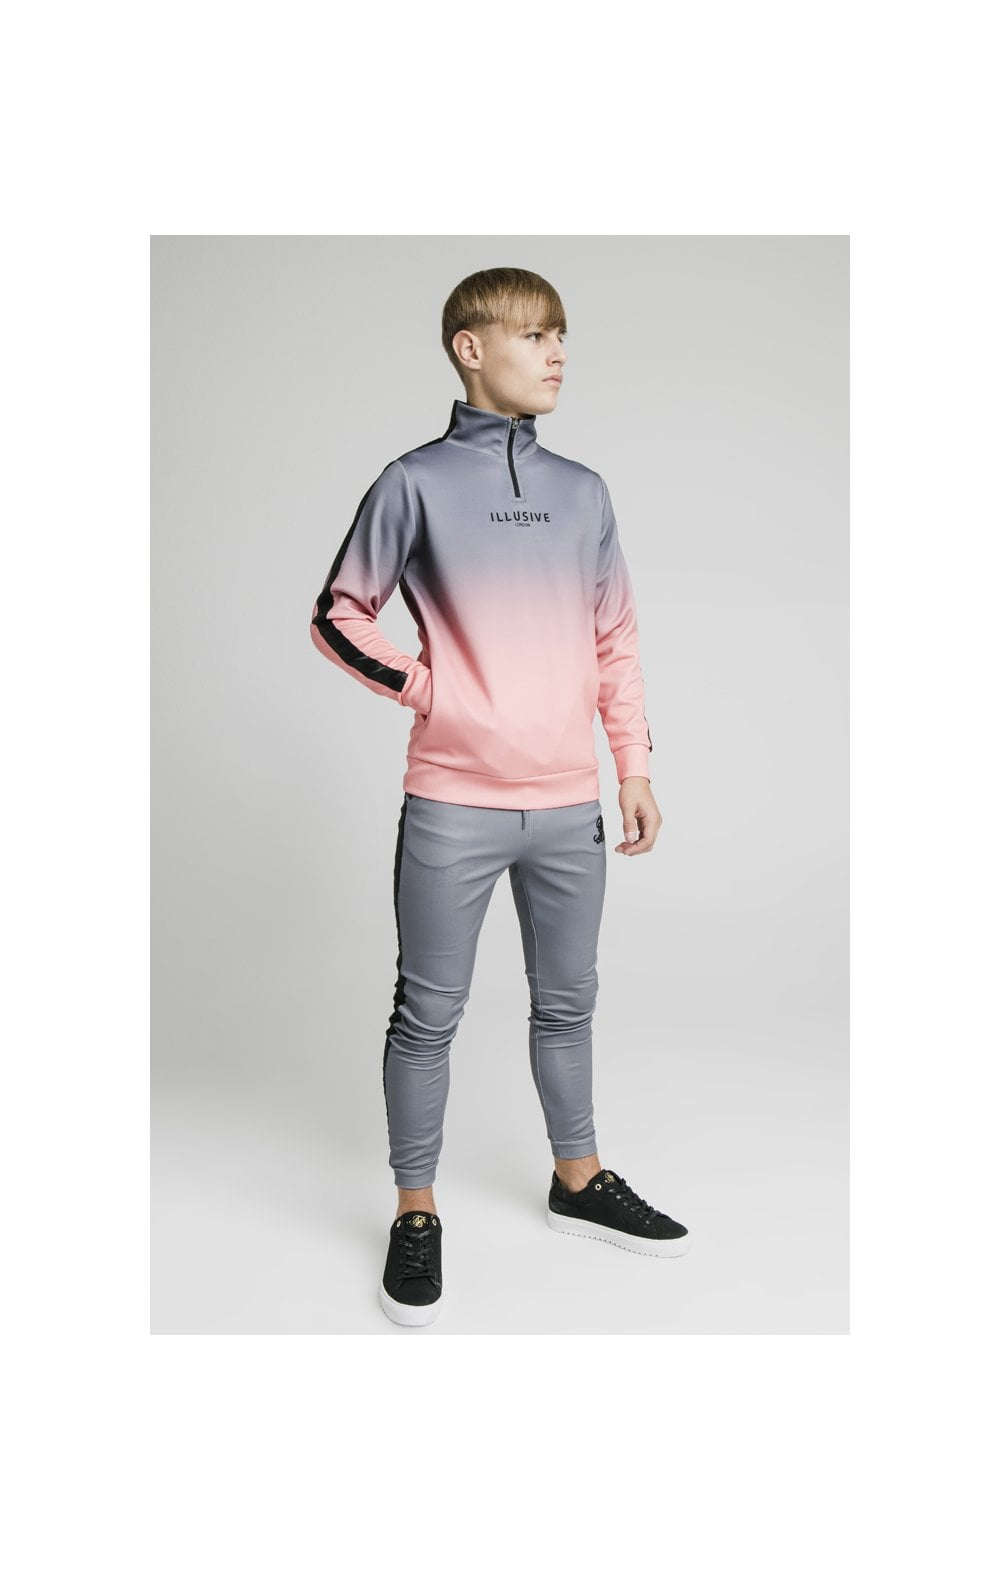 Load image into Gallery viewer, Illusive London 1/4 Zip Fade Hoodie - Grey & Peach (1)